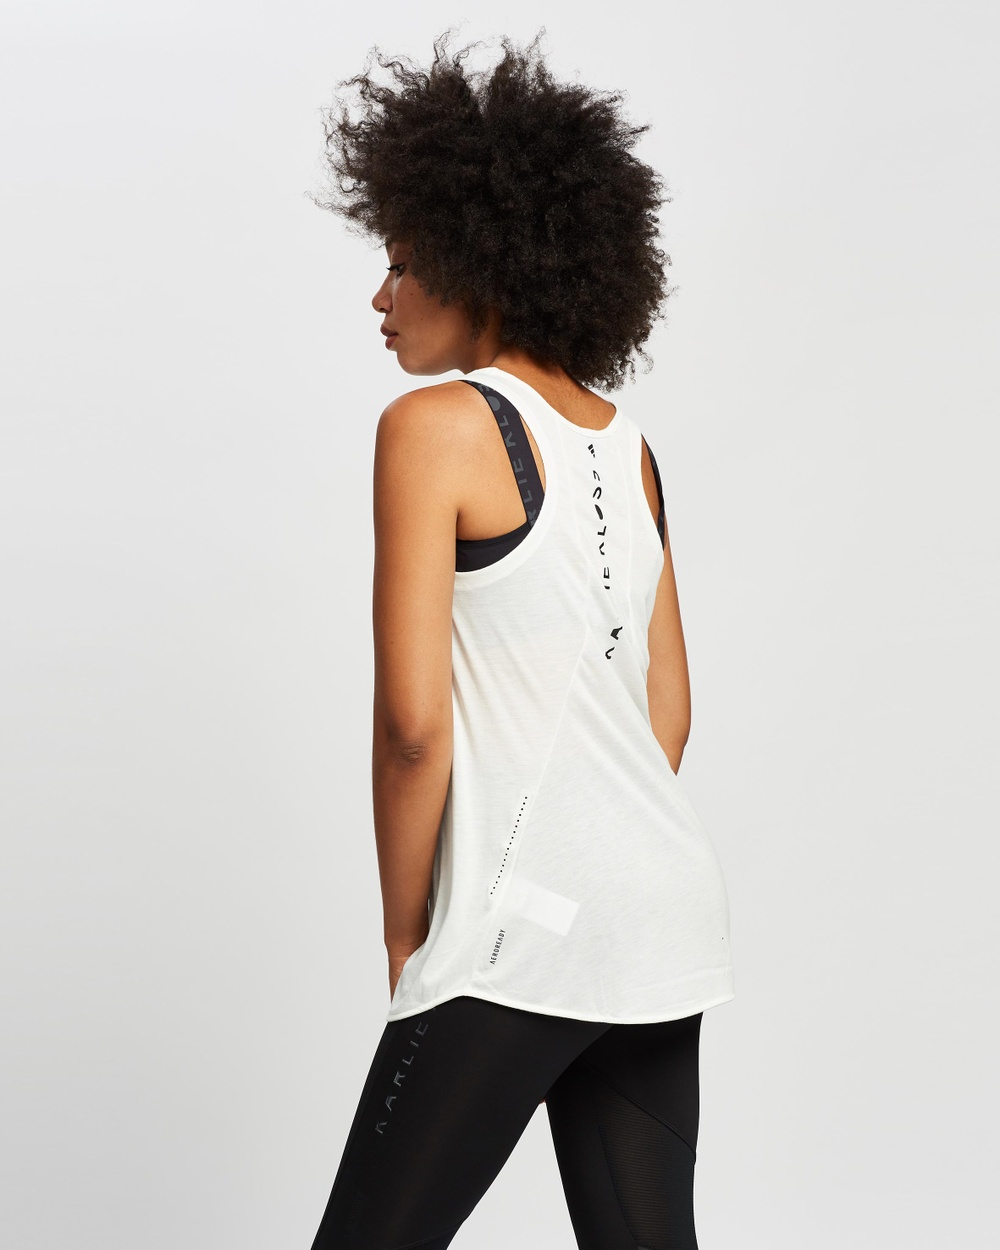 adidas Performance Karlie Kloss Long Tank Top Muscle Tops Off White